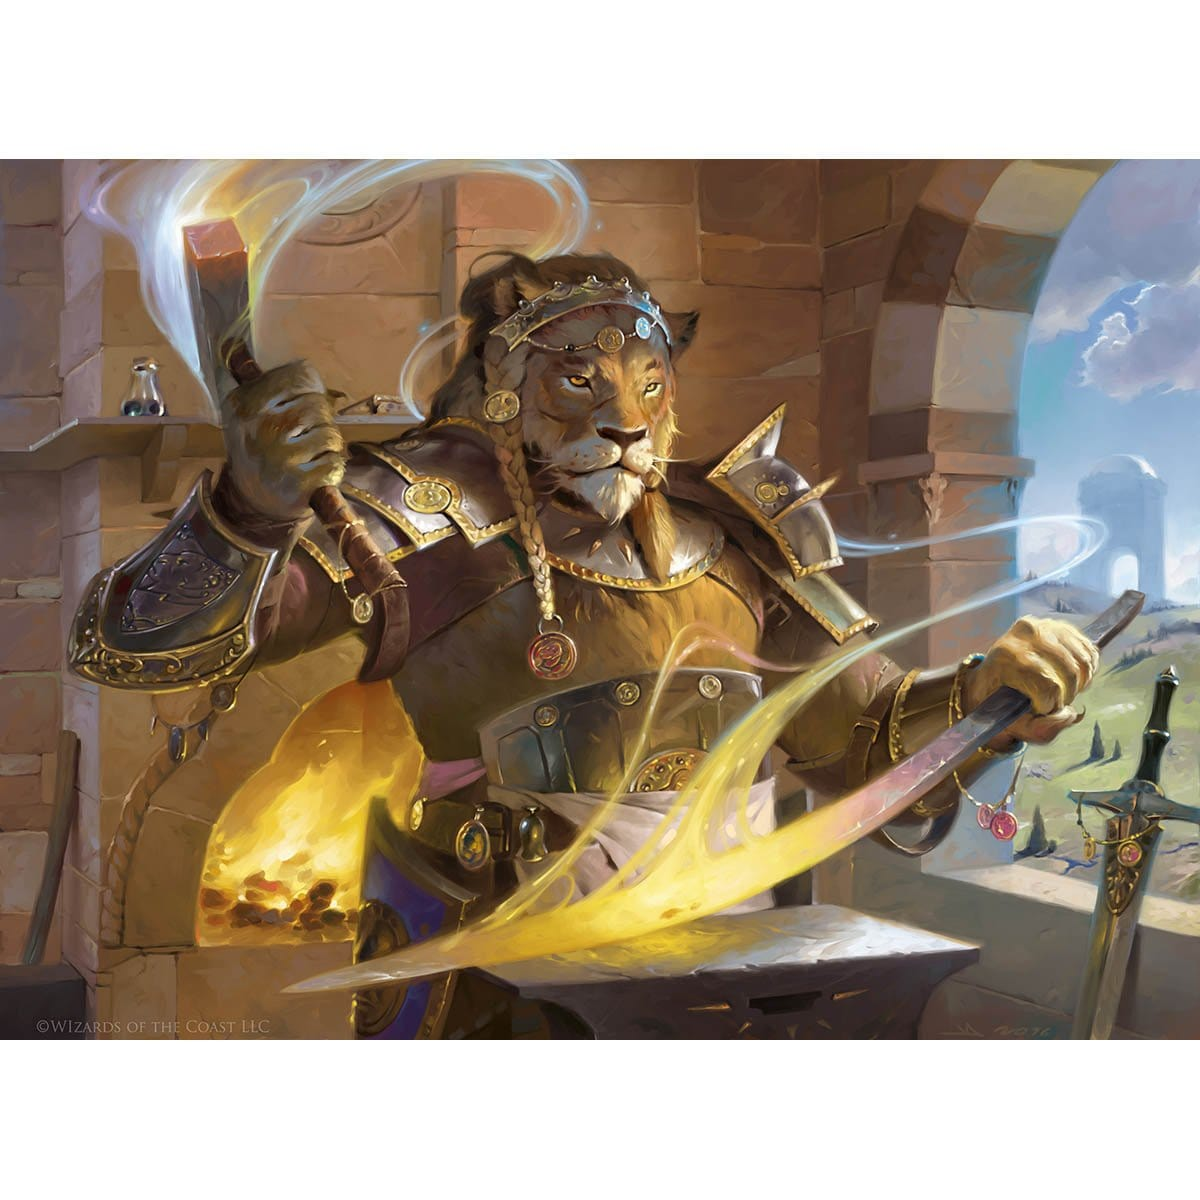 Nazahn, Revered Blacksmith Print - Print - Original Magic Art - Accessories for Magic the Gathering and other card games